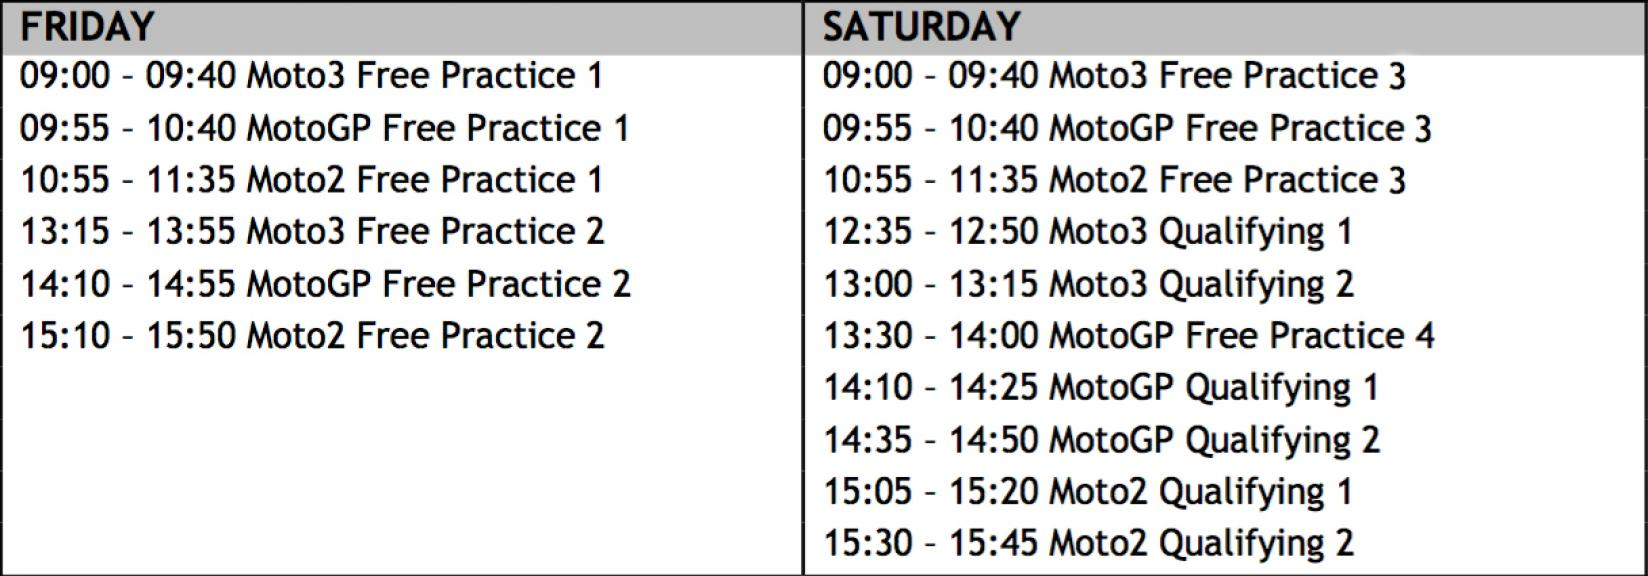 Timetable Qualifying